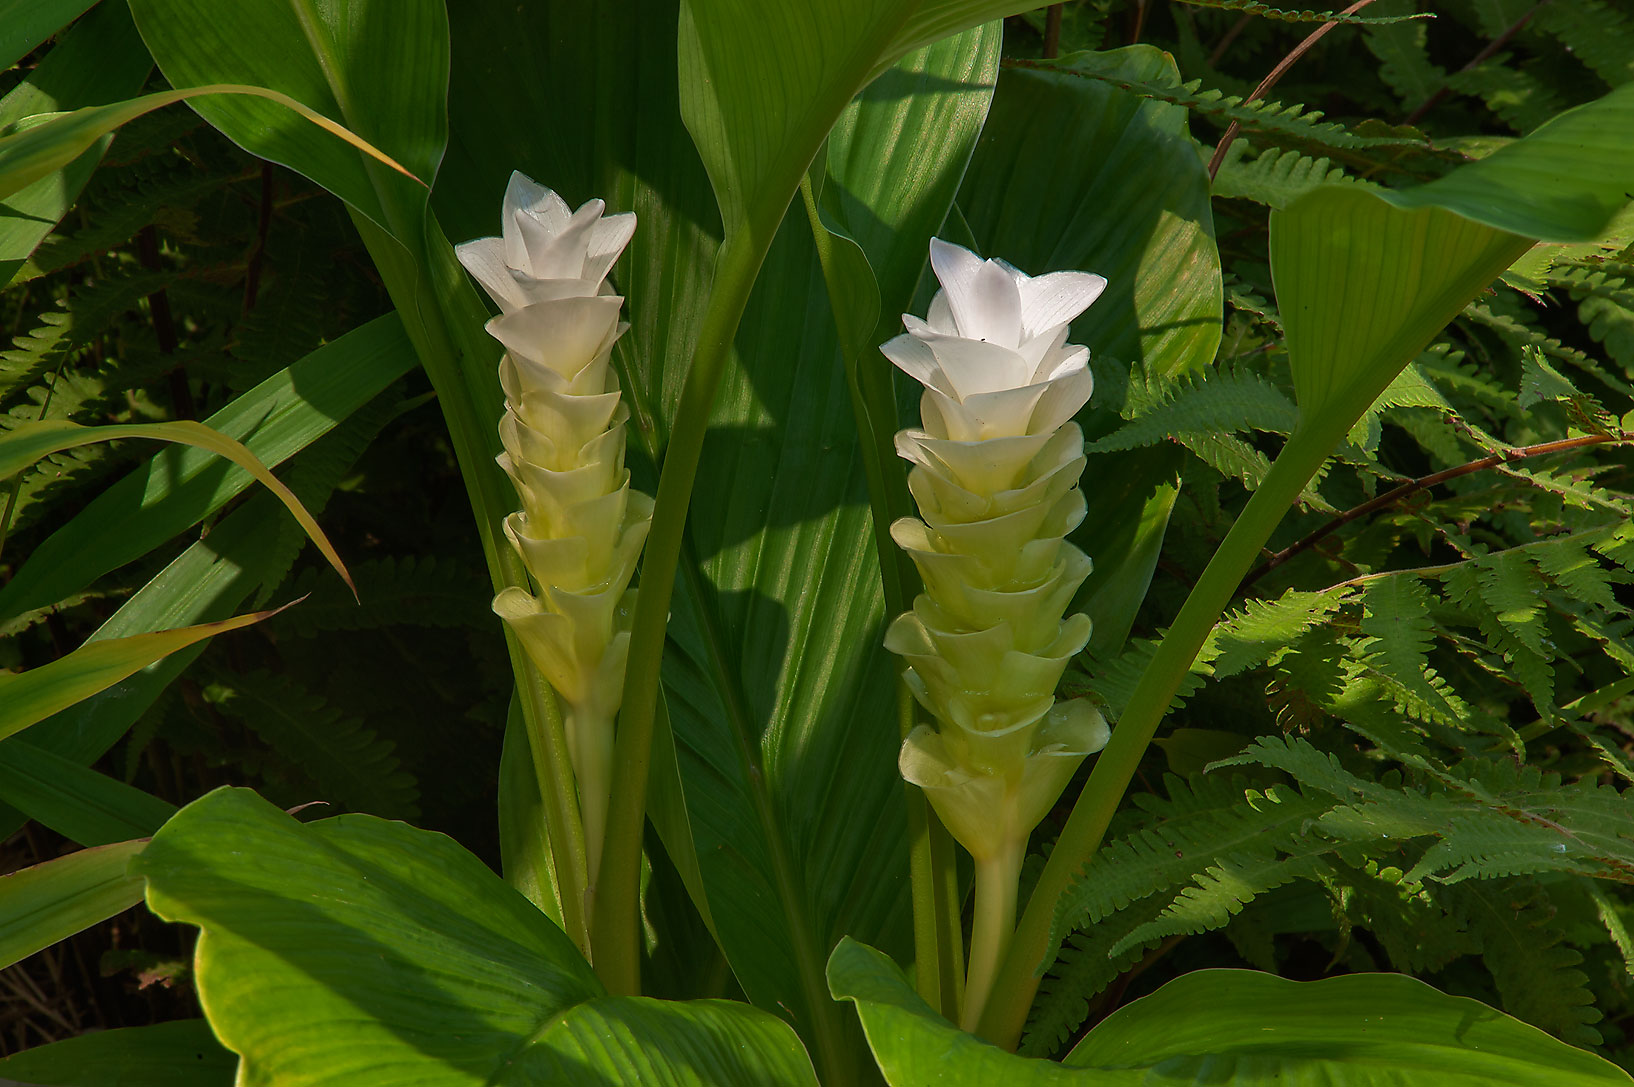 Hidden ginger (Curcuma cordata 'white' or may be...Gardens. Humble (Houston area), Texas